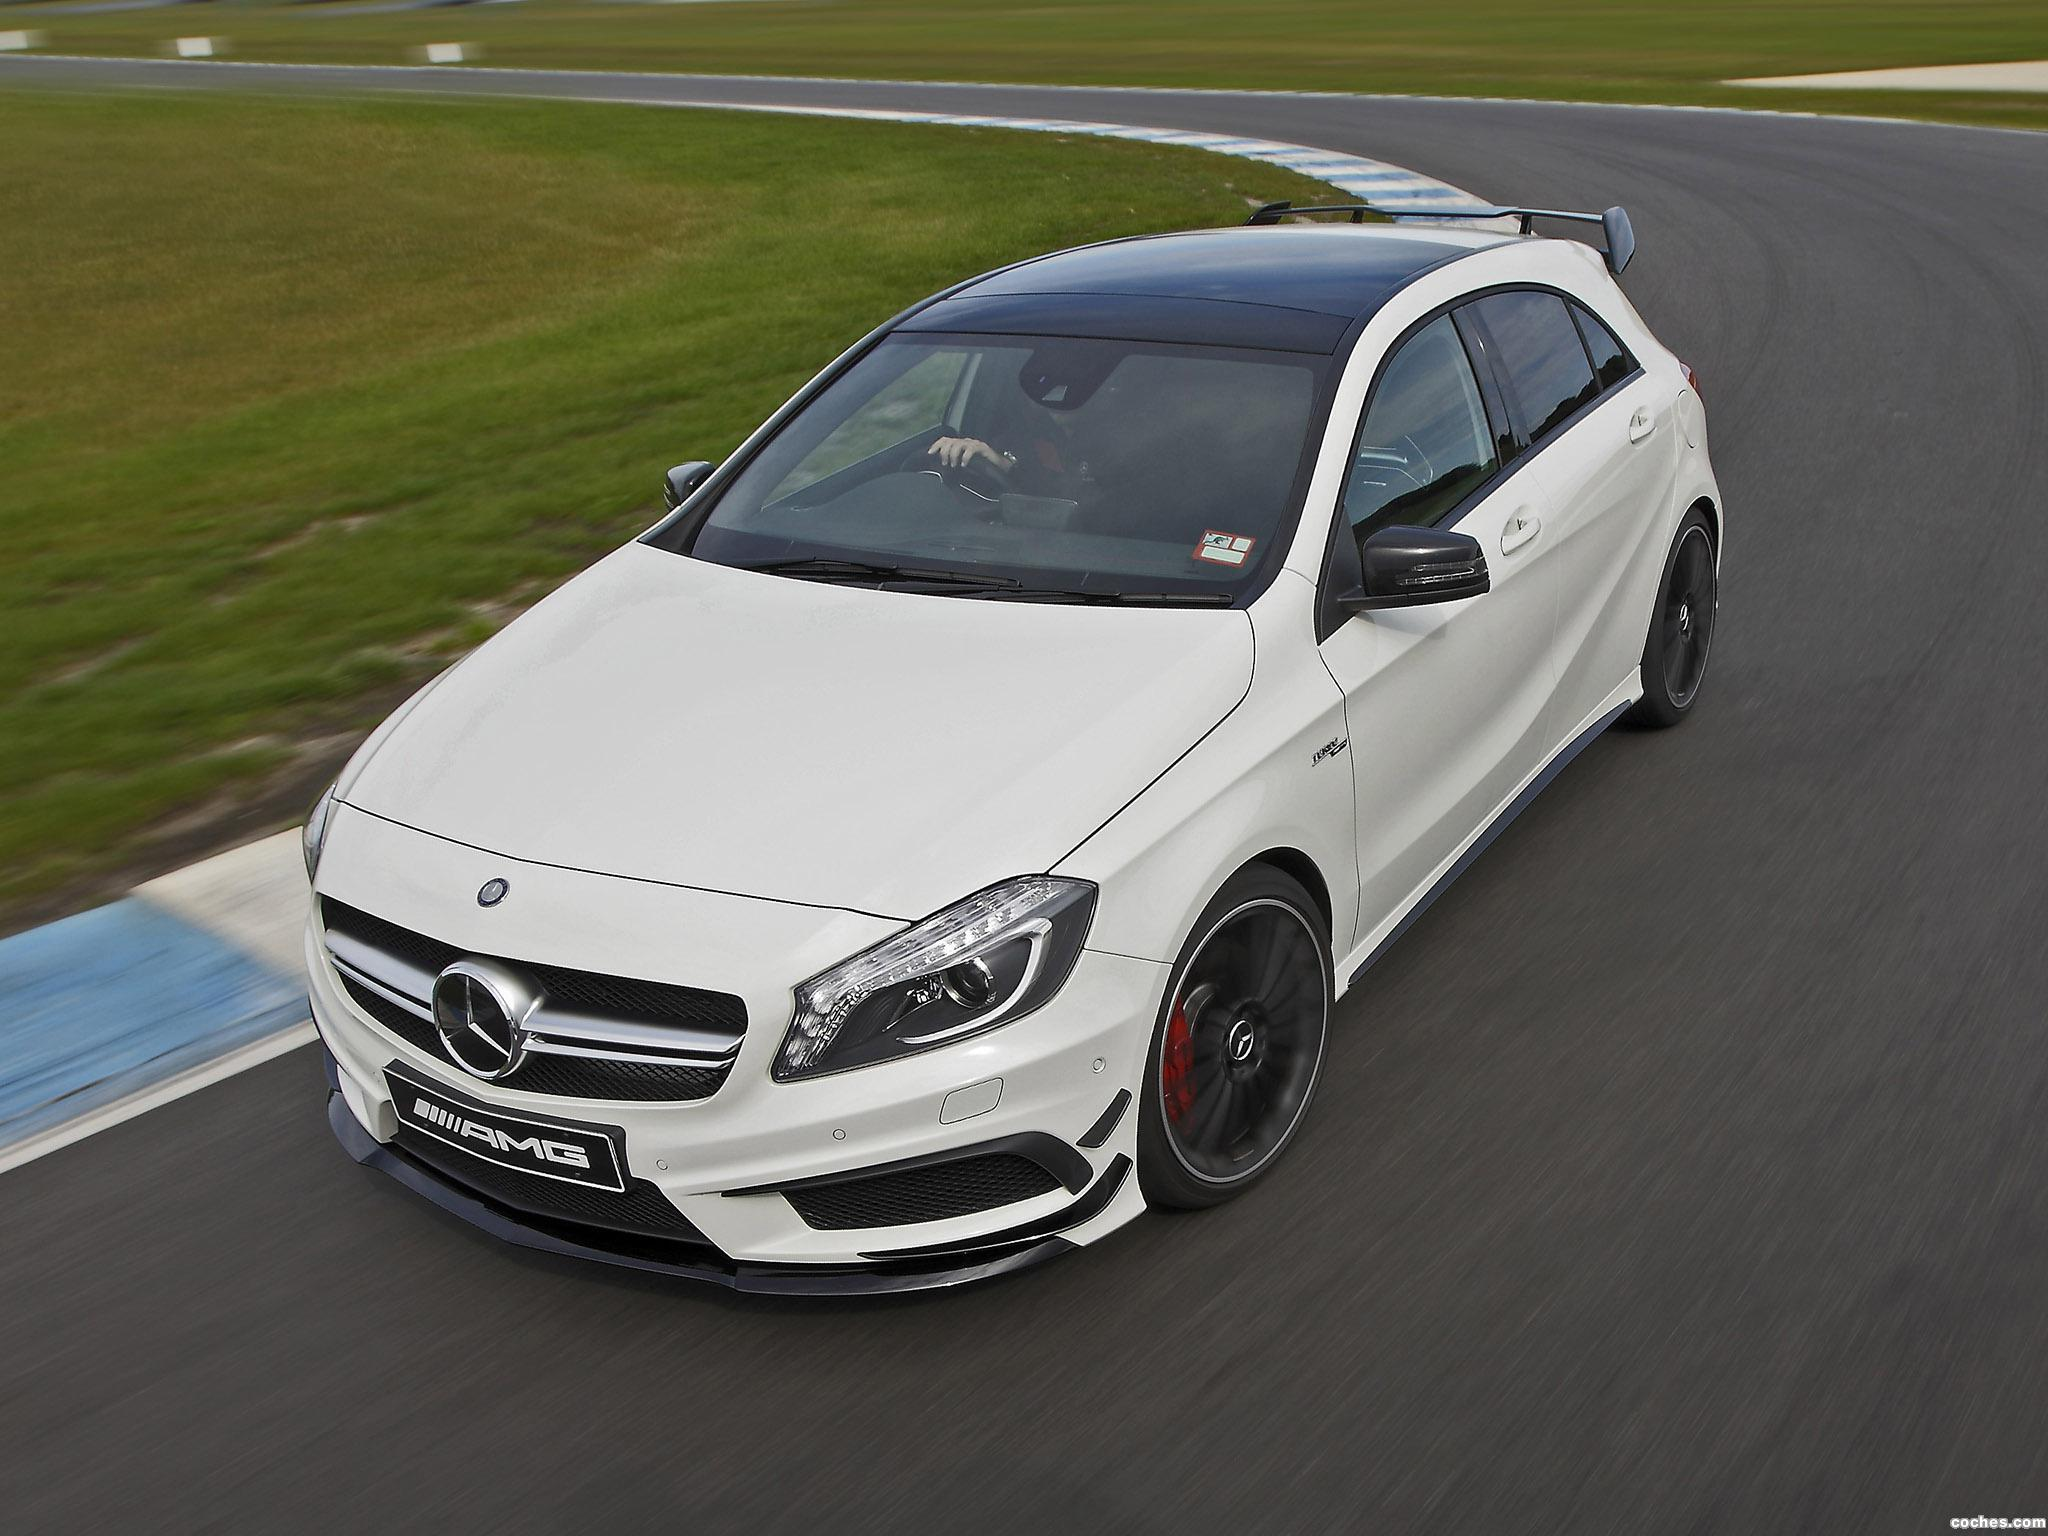 fotos de mercedes clase a45 amg edition 1 w176 australia 2013. Black Bedroom Furniture Sets. Home Design Ideas